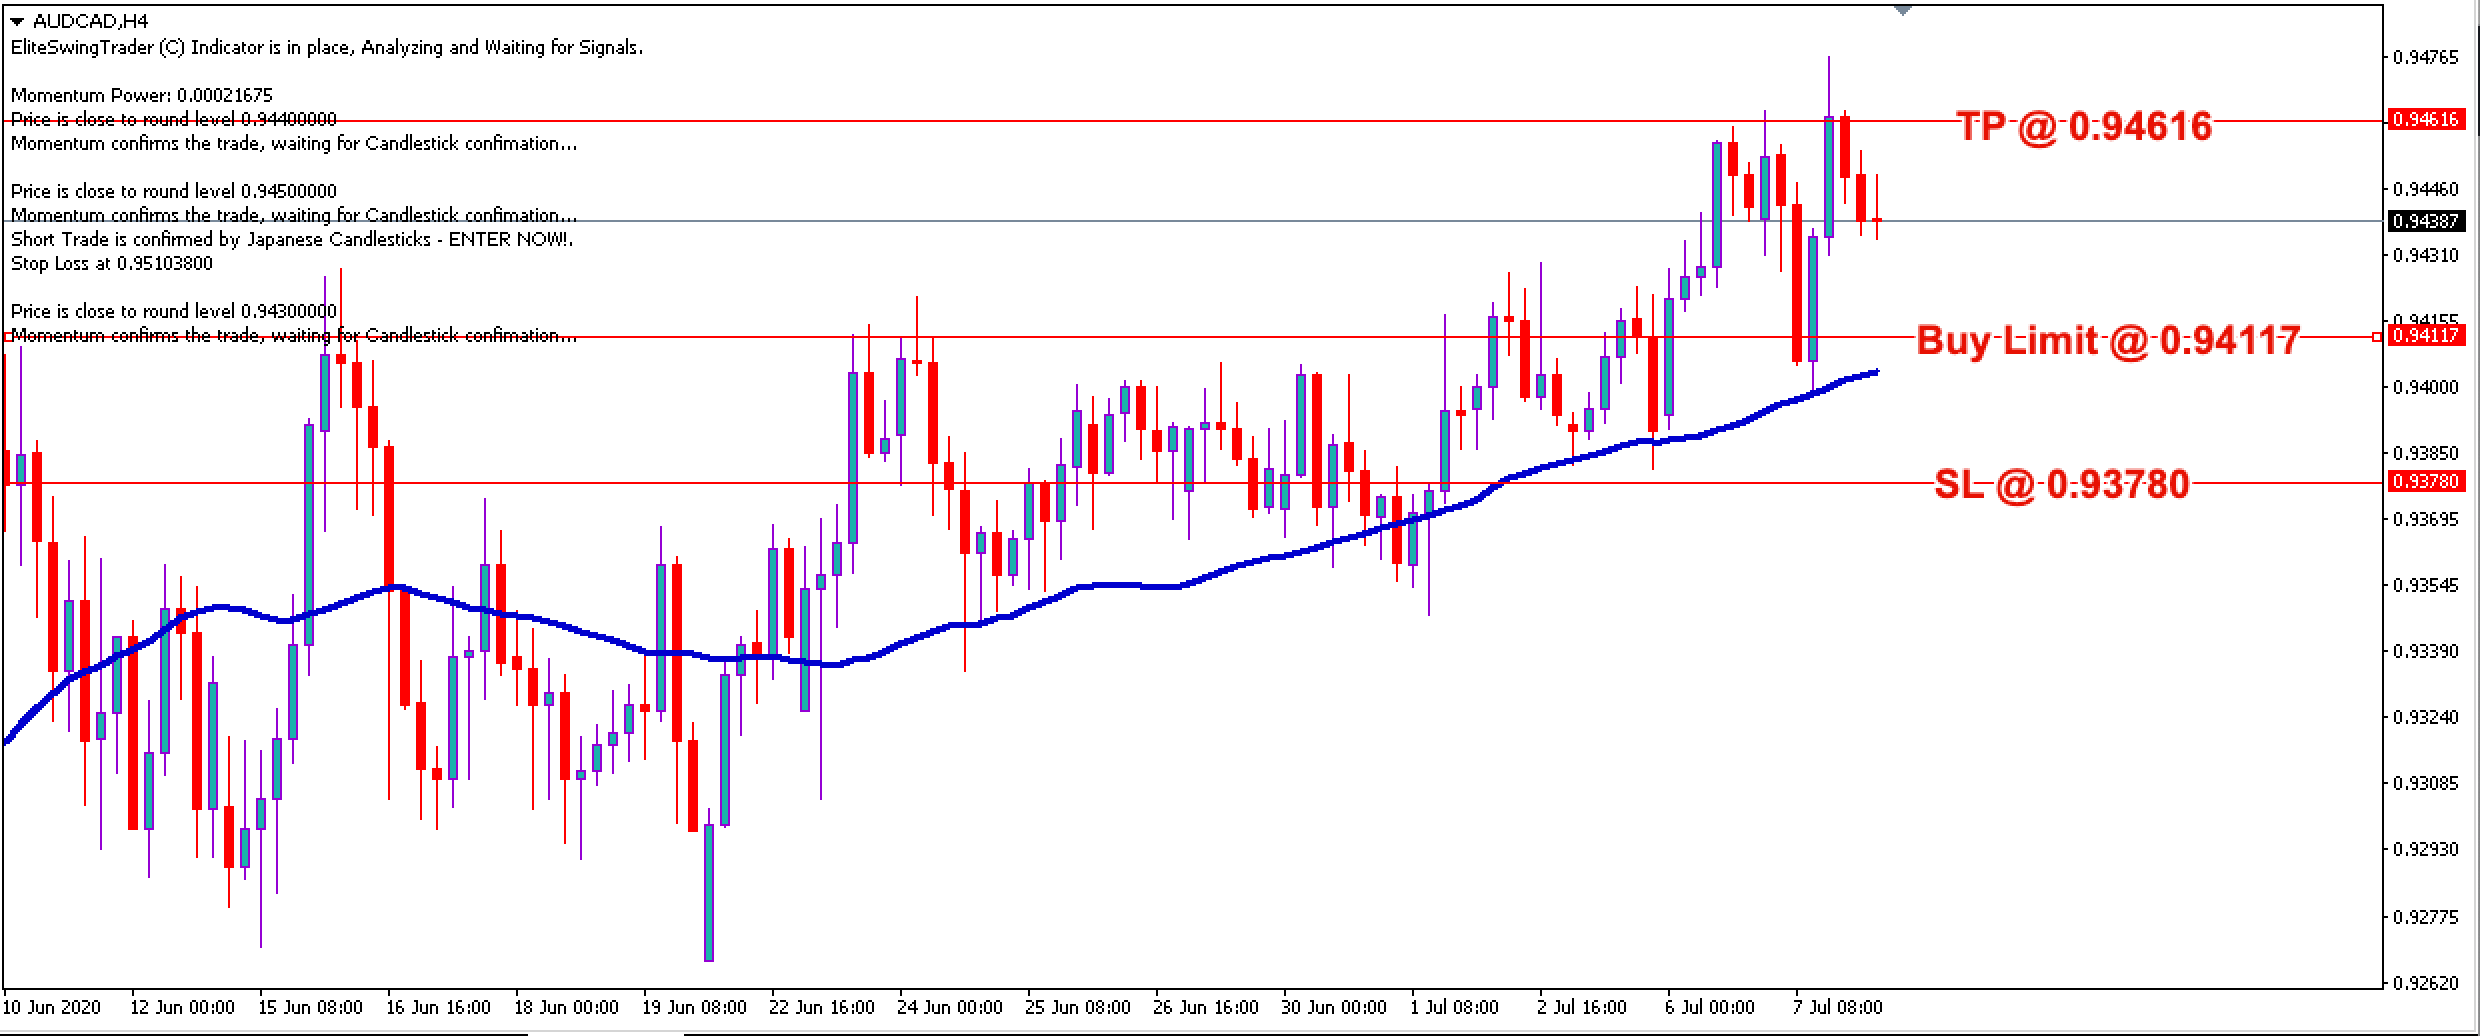 AUD/CAD Free Forex Trading Signals - 8th July 2020